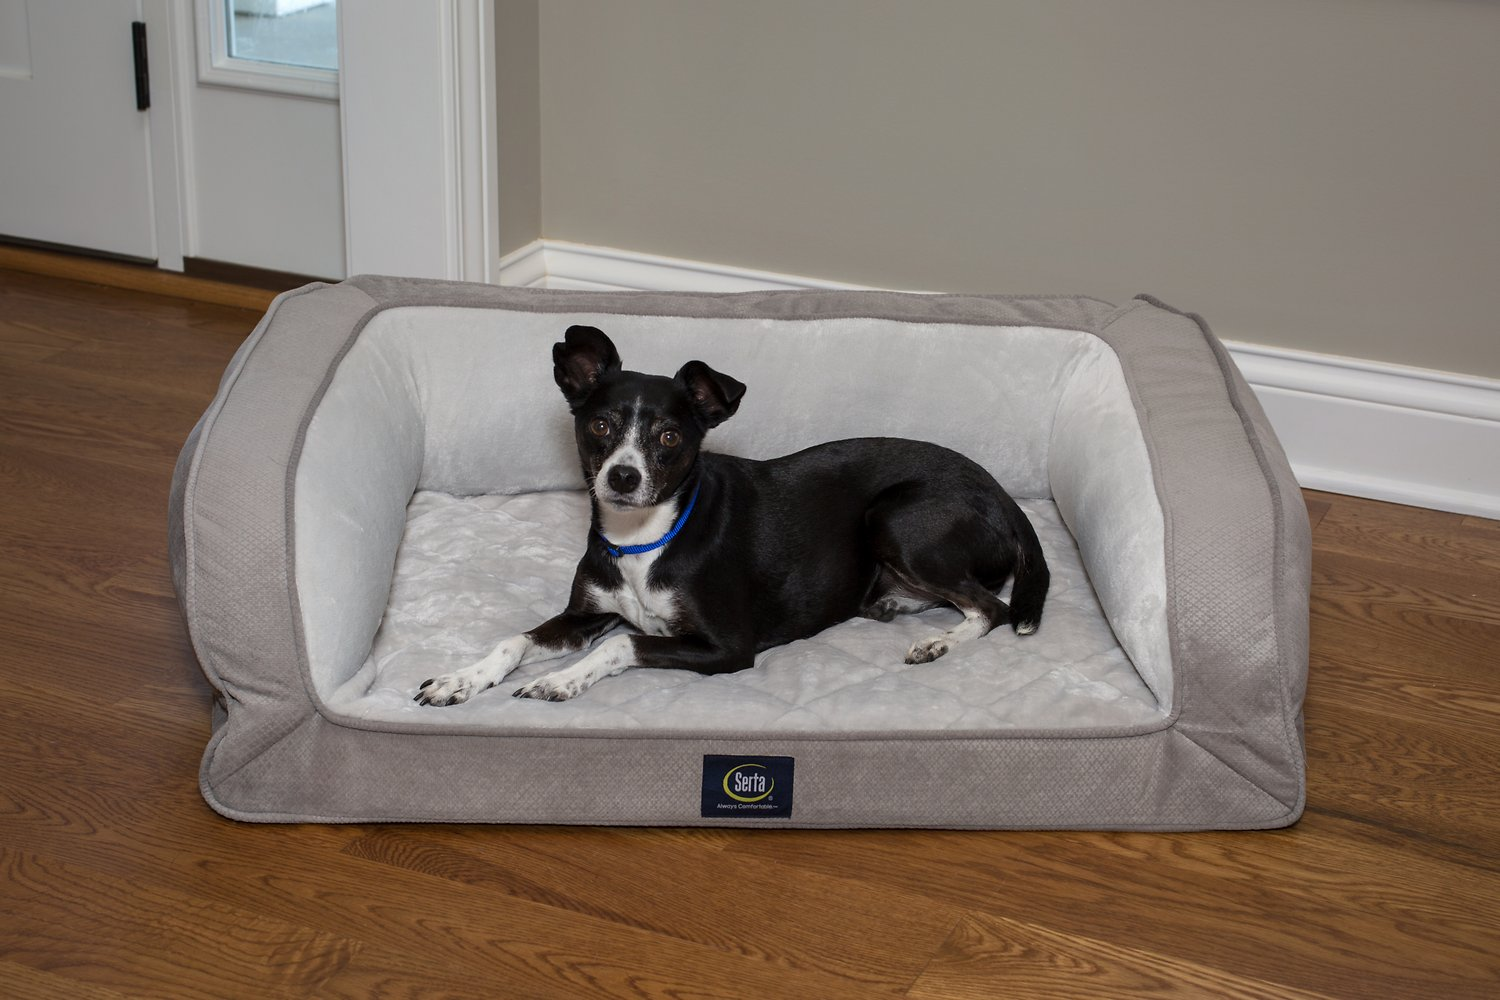 fleas in sofa no pets modern design beds serta orthopedic quilted dog and cat couch bed grey chewy